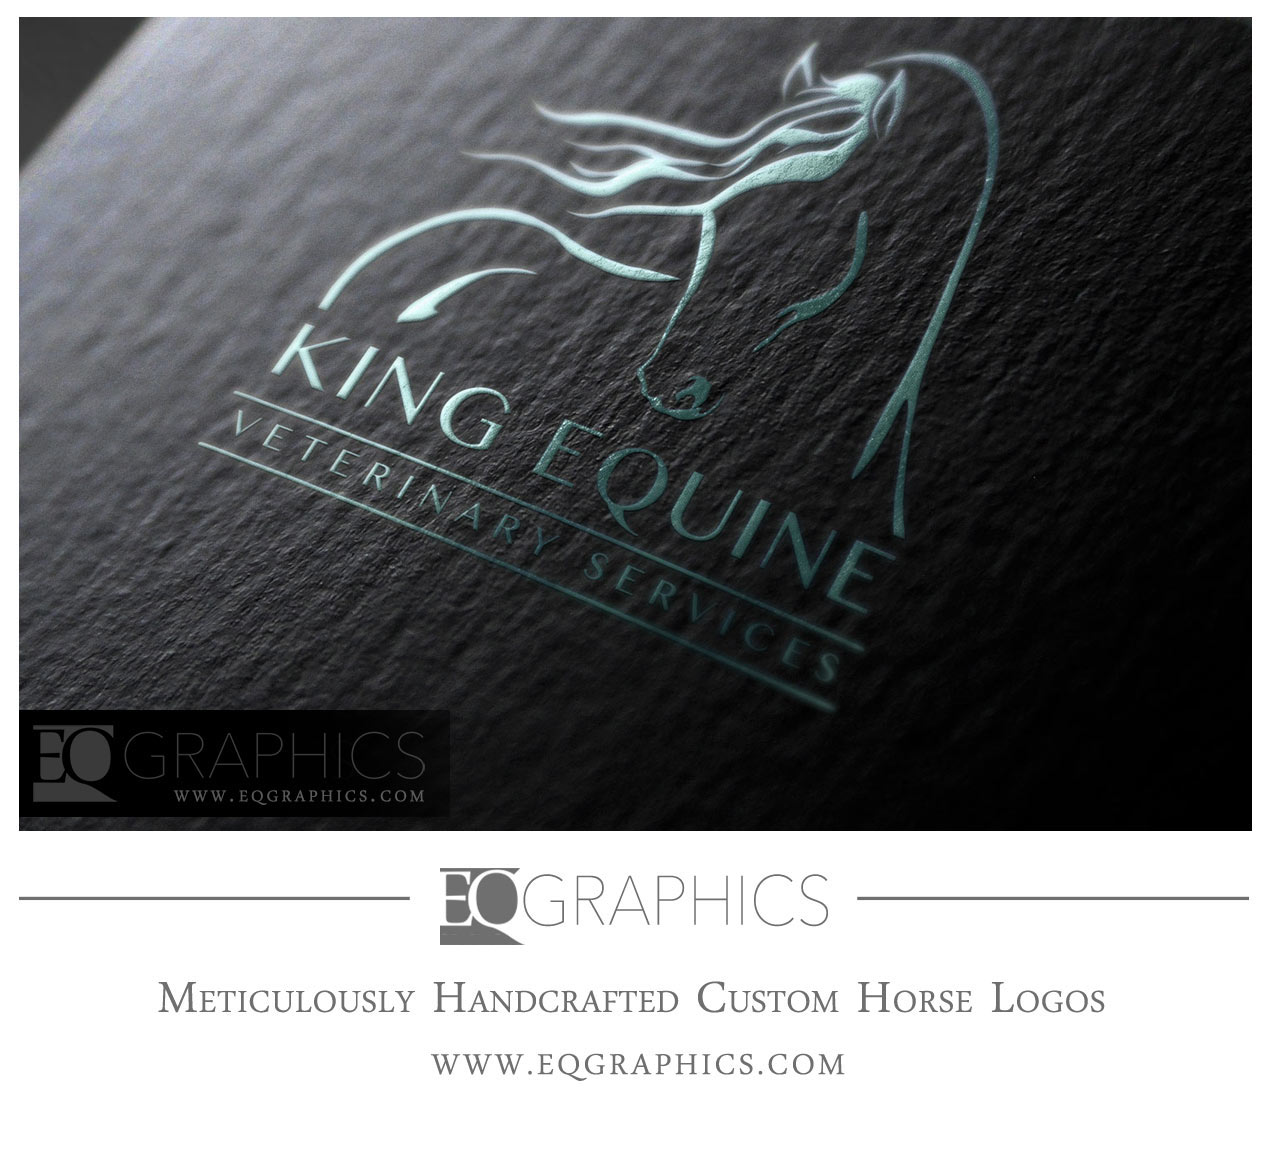 King Equine Veterinary Services Logo Design by EQ Graphics Horse Veterinarian Logos